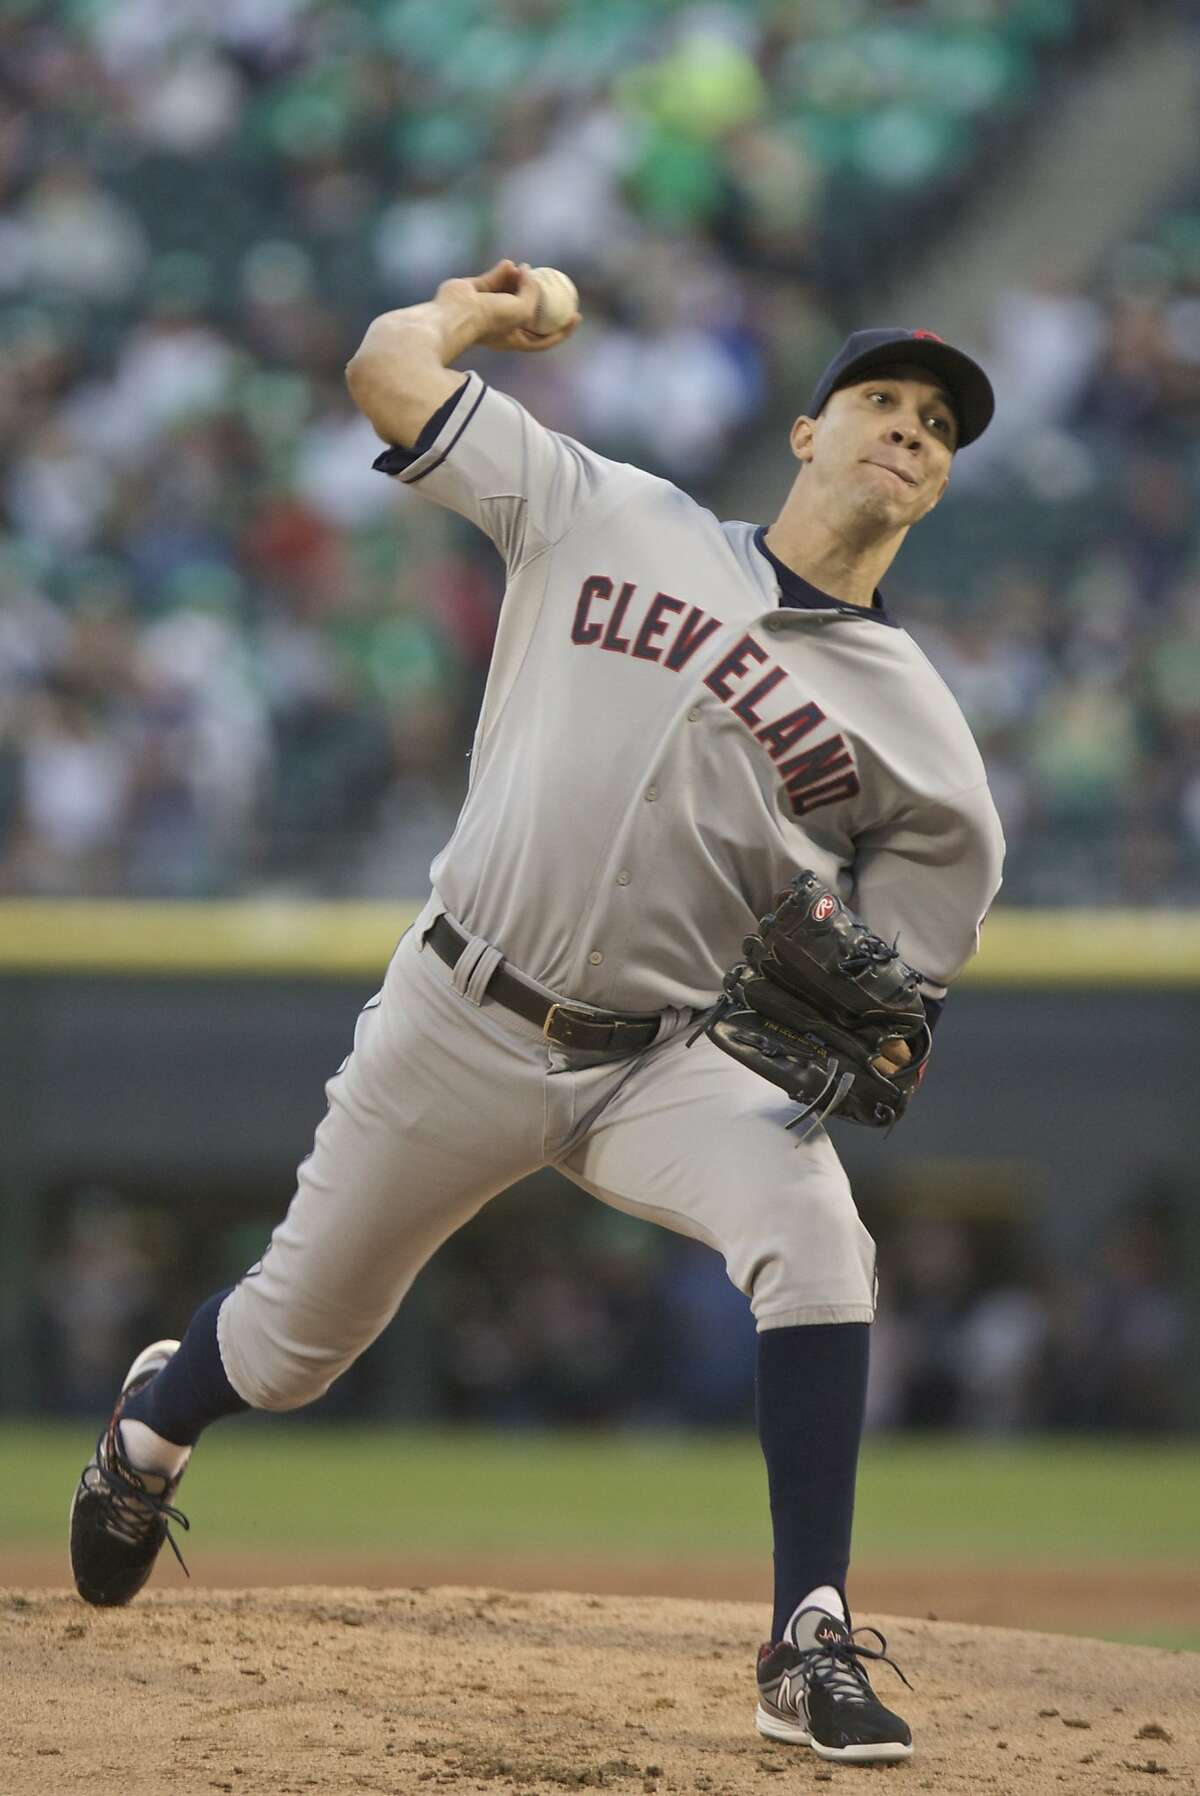 CHICAGO, IL - SEPTEMBER 14: Ubaldo Jimenez #30 of the Cleveland Indians throws to the Chicago White Sox during the first inning of their MLB game at U.S. Cellular Field on September 14, 2013 in Chicago, Illinois. (Photo by John Gress/Getty Images)